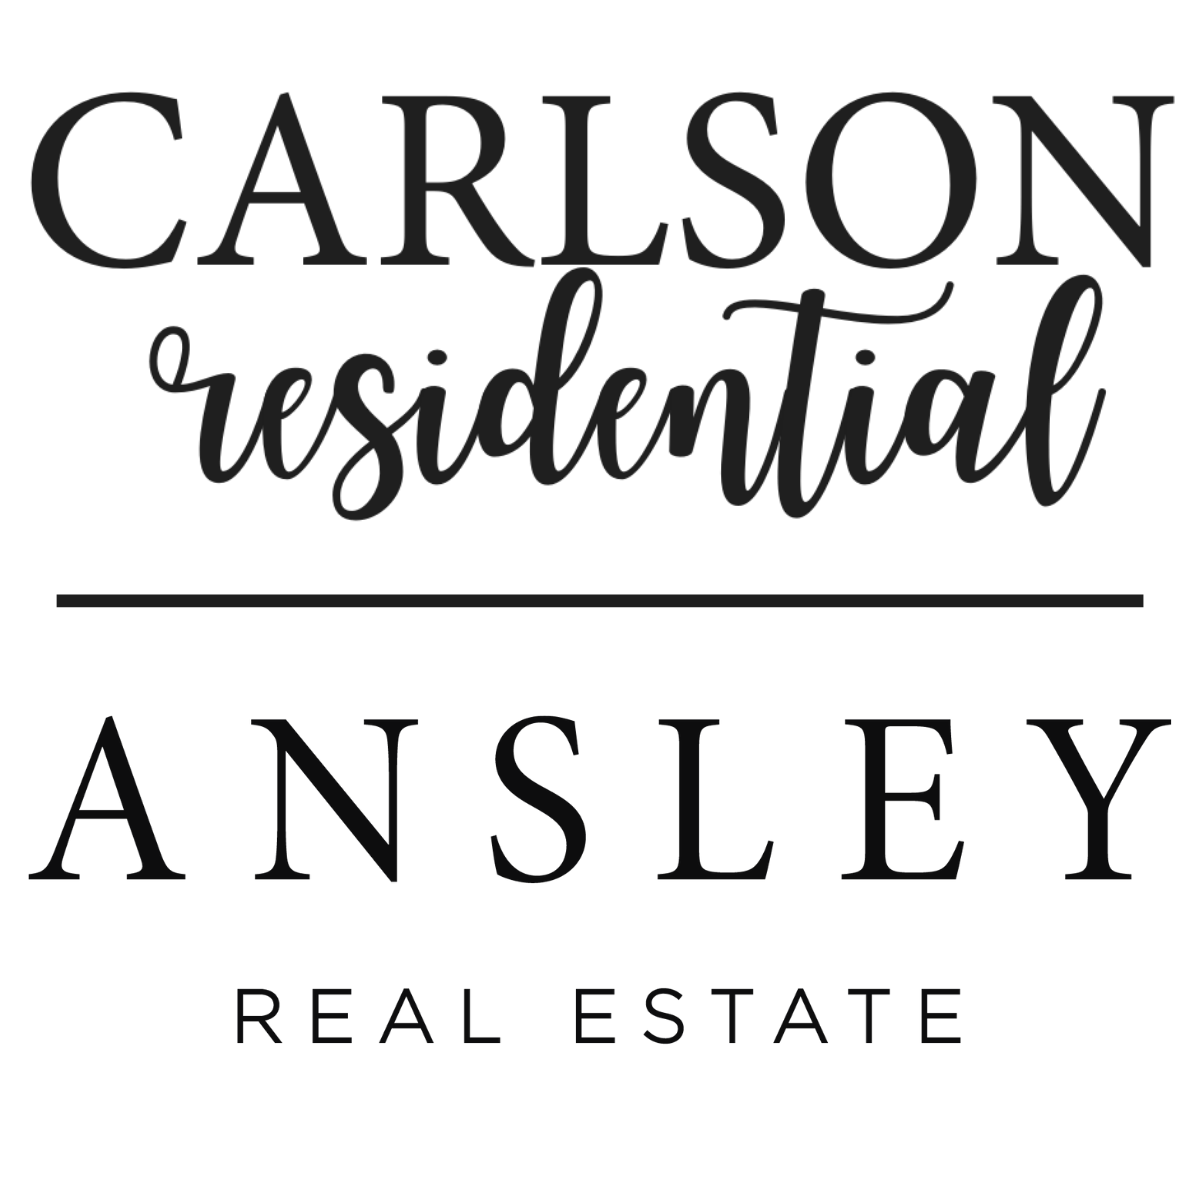 Carlson Residential of Ansley Real Estate